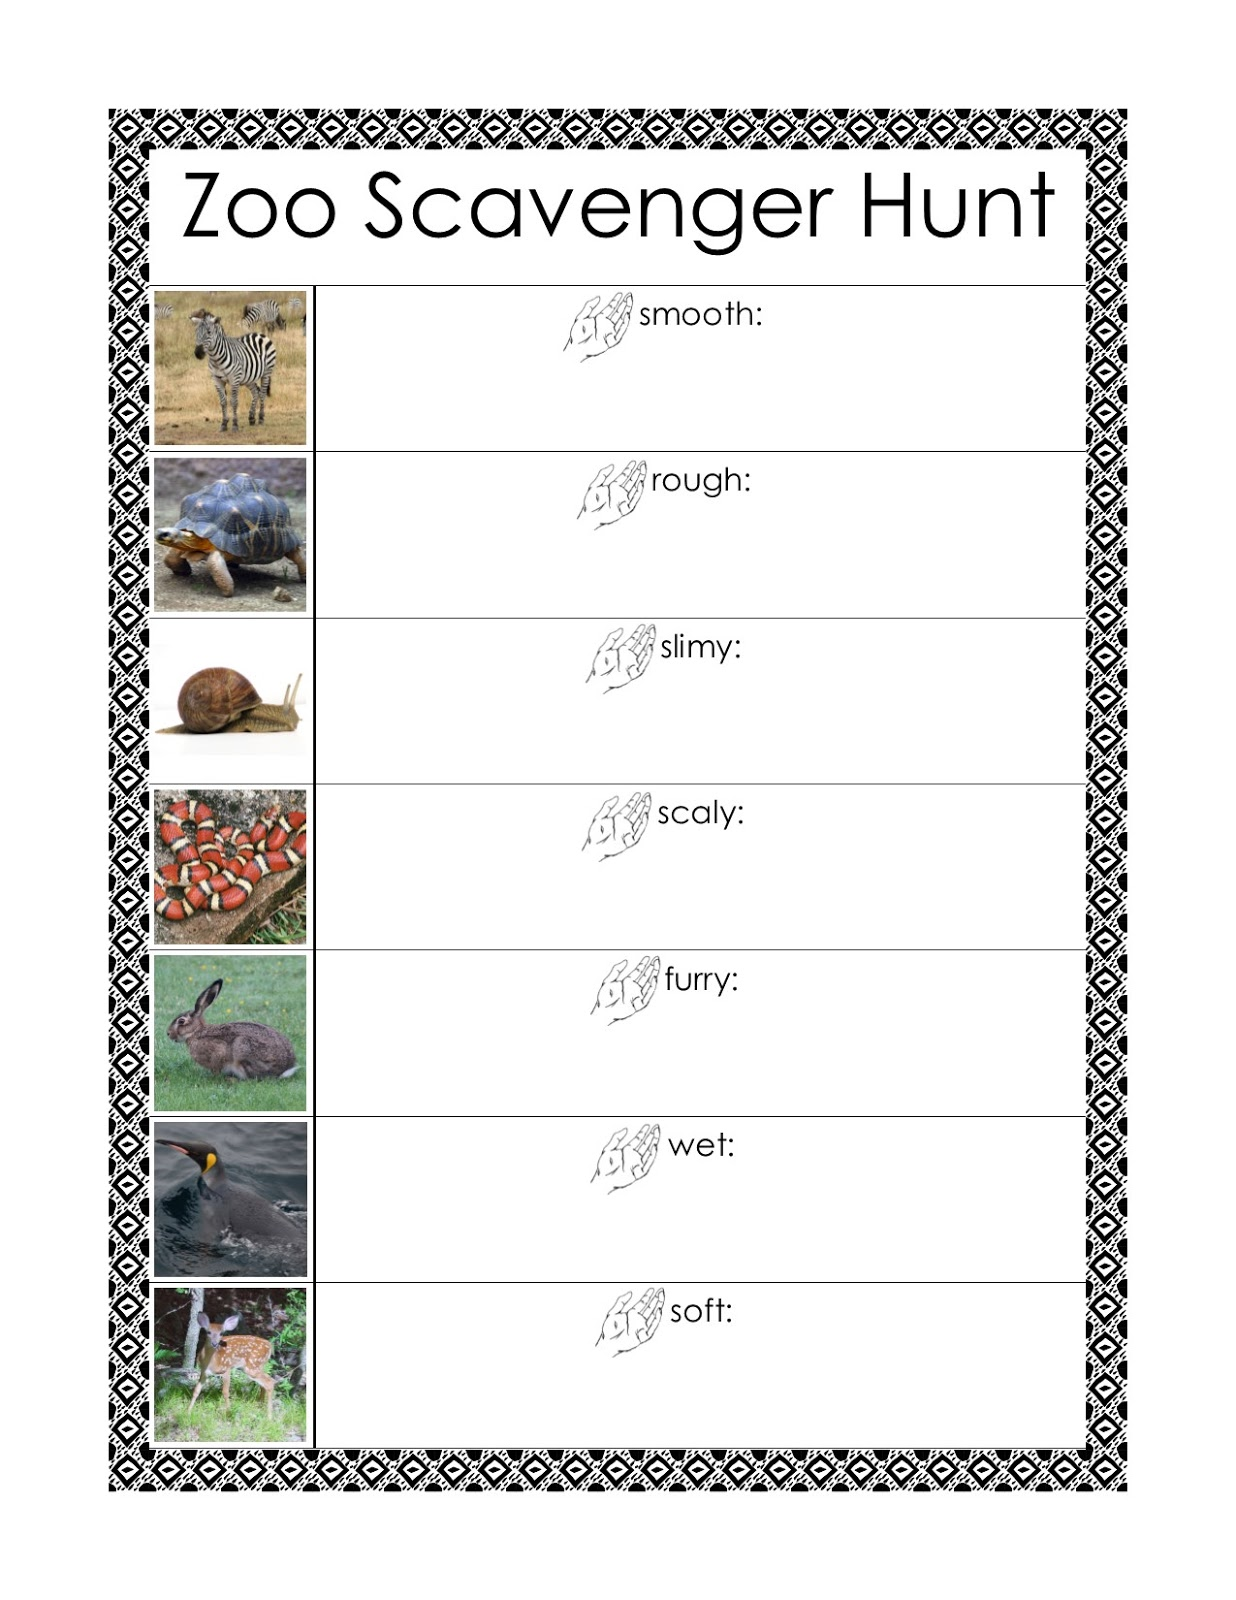 Mesmerizing image intended for zoo scavenger hunt printable